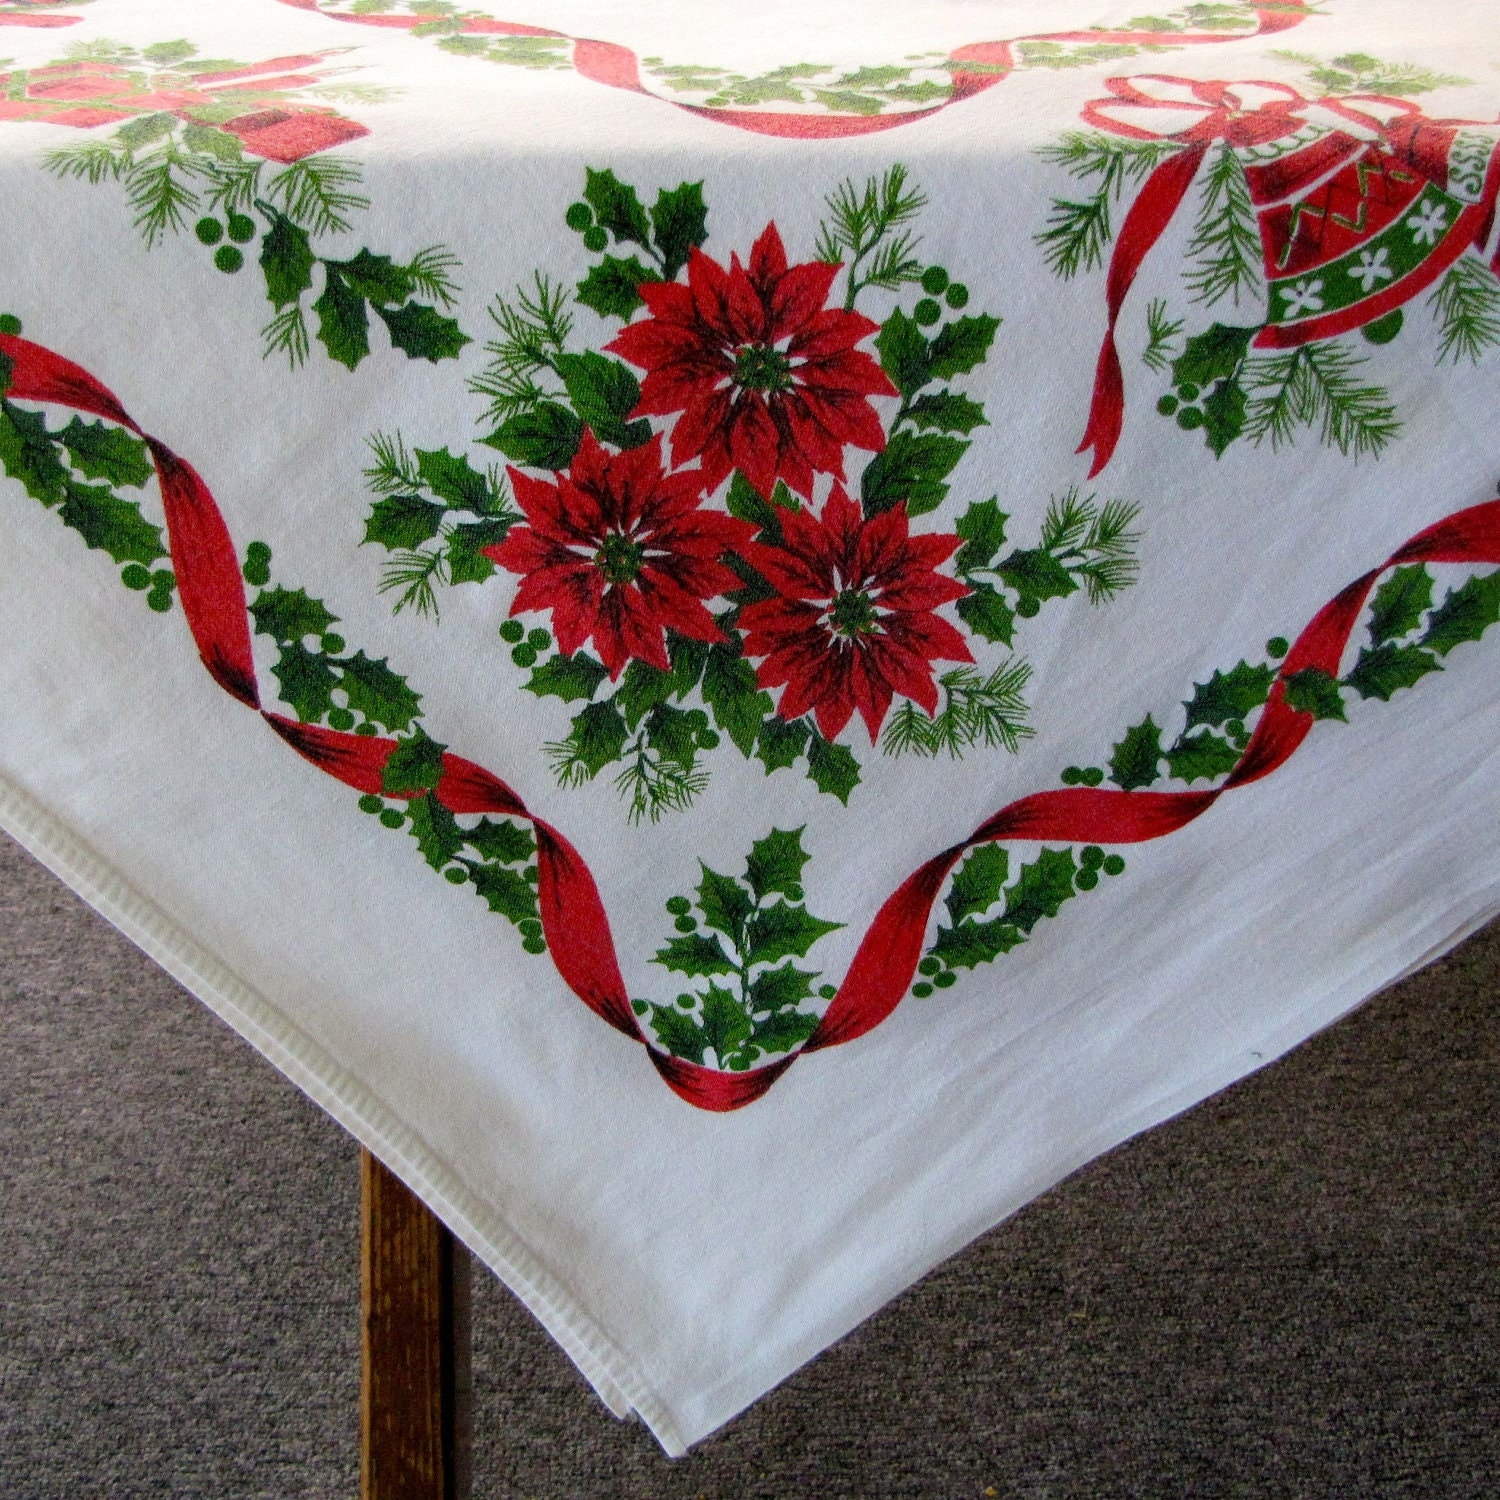 Vintage Christmas Tablecloth Linen Sleigh Bells Poinsettias